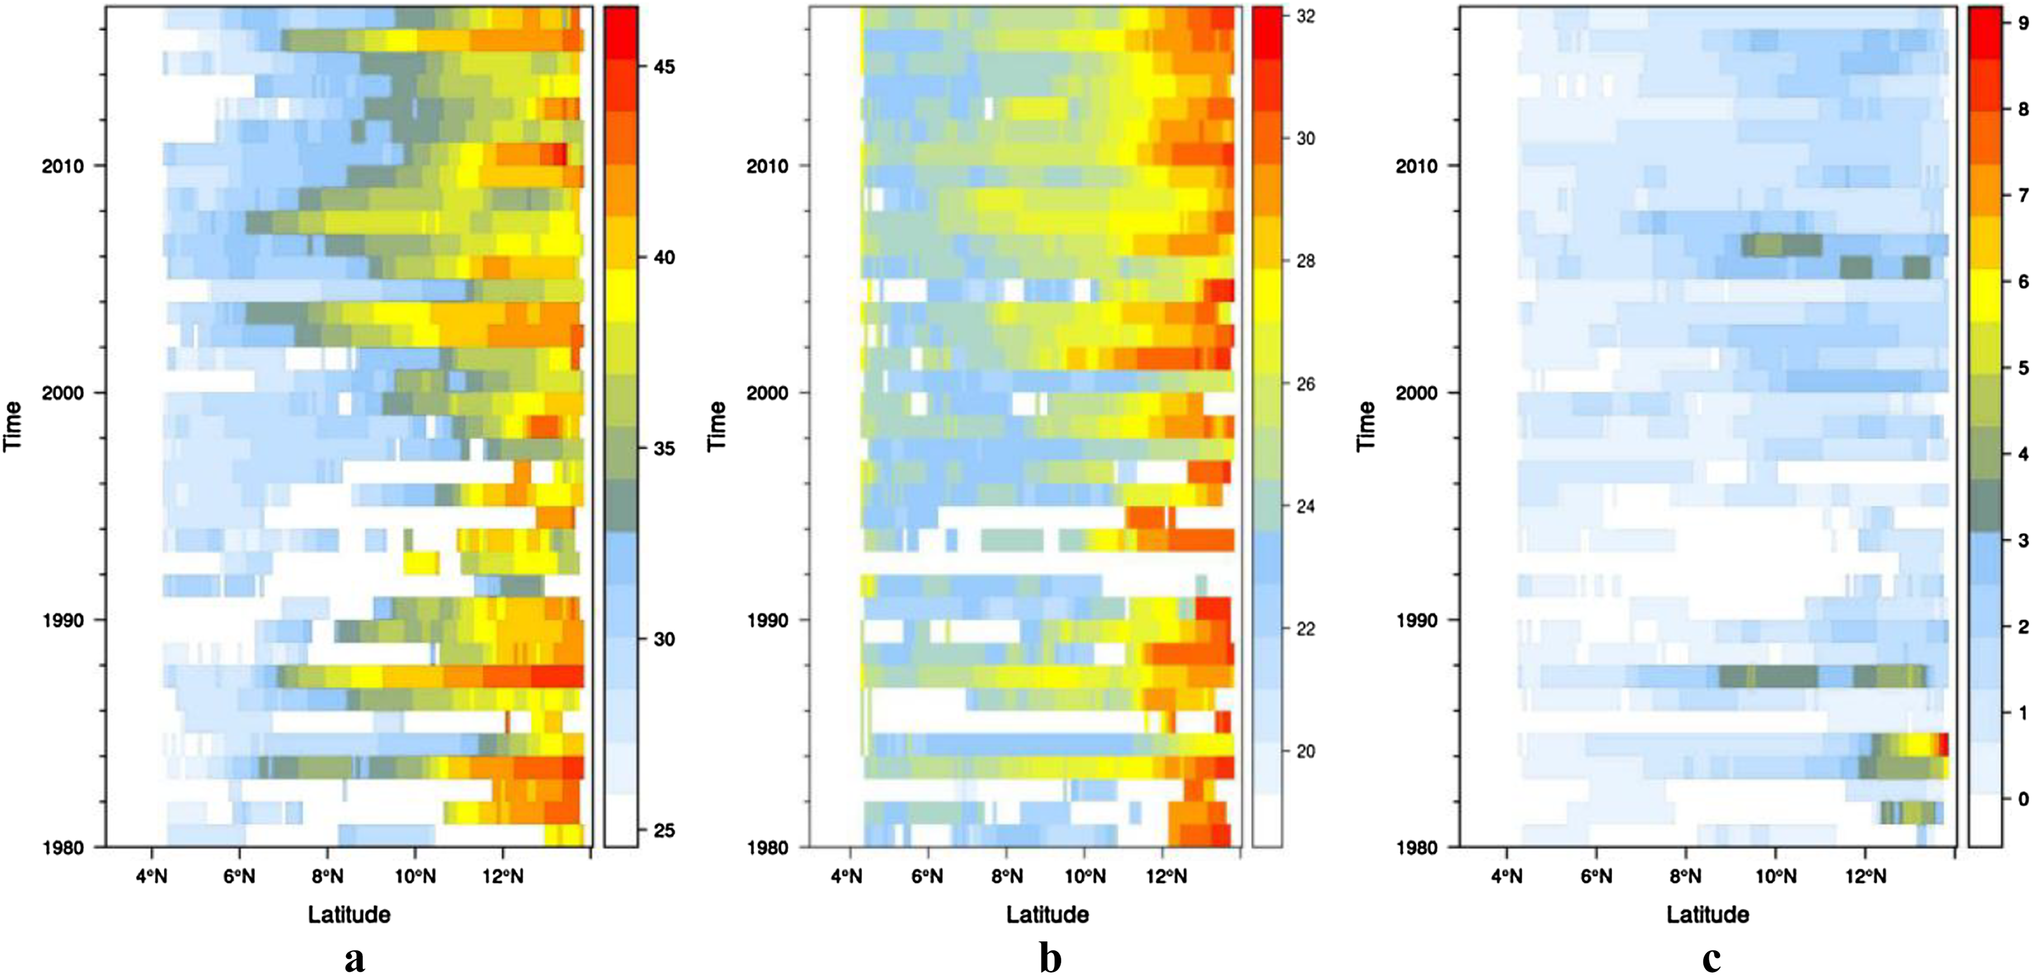 A change comparison of heat wave aspects in climatic zones